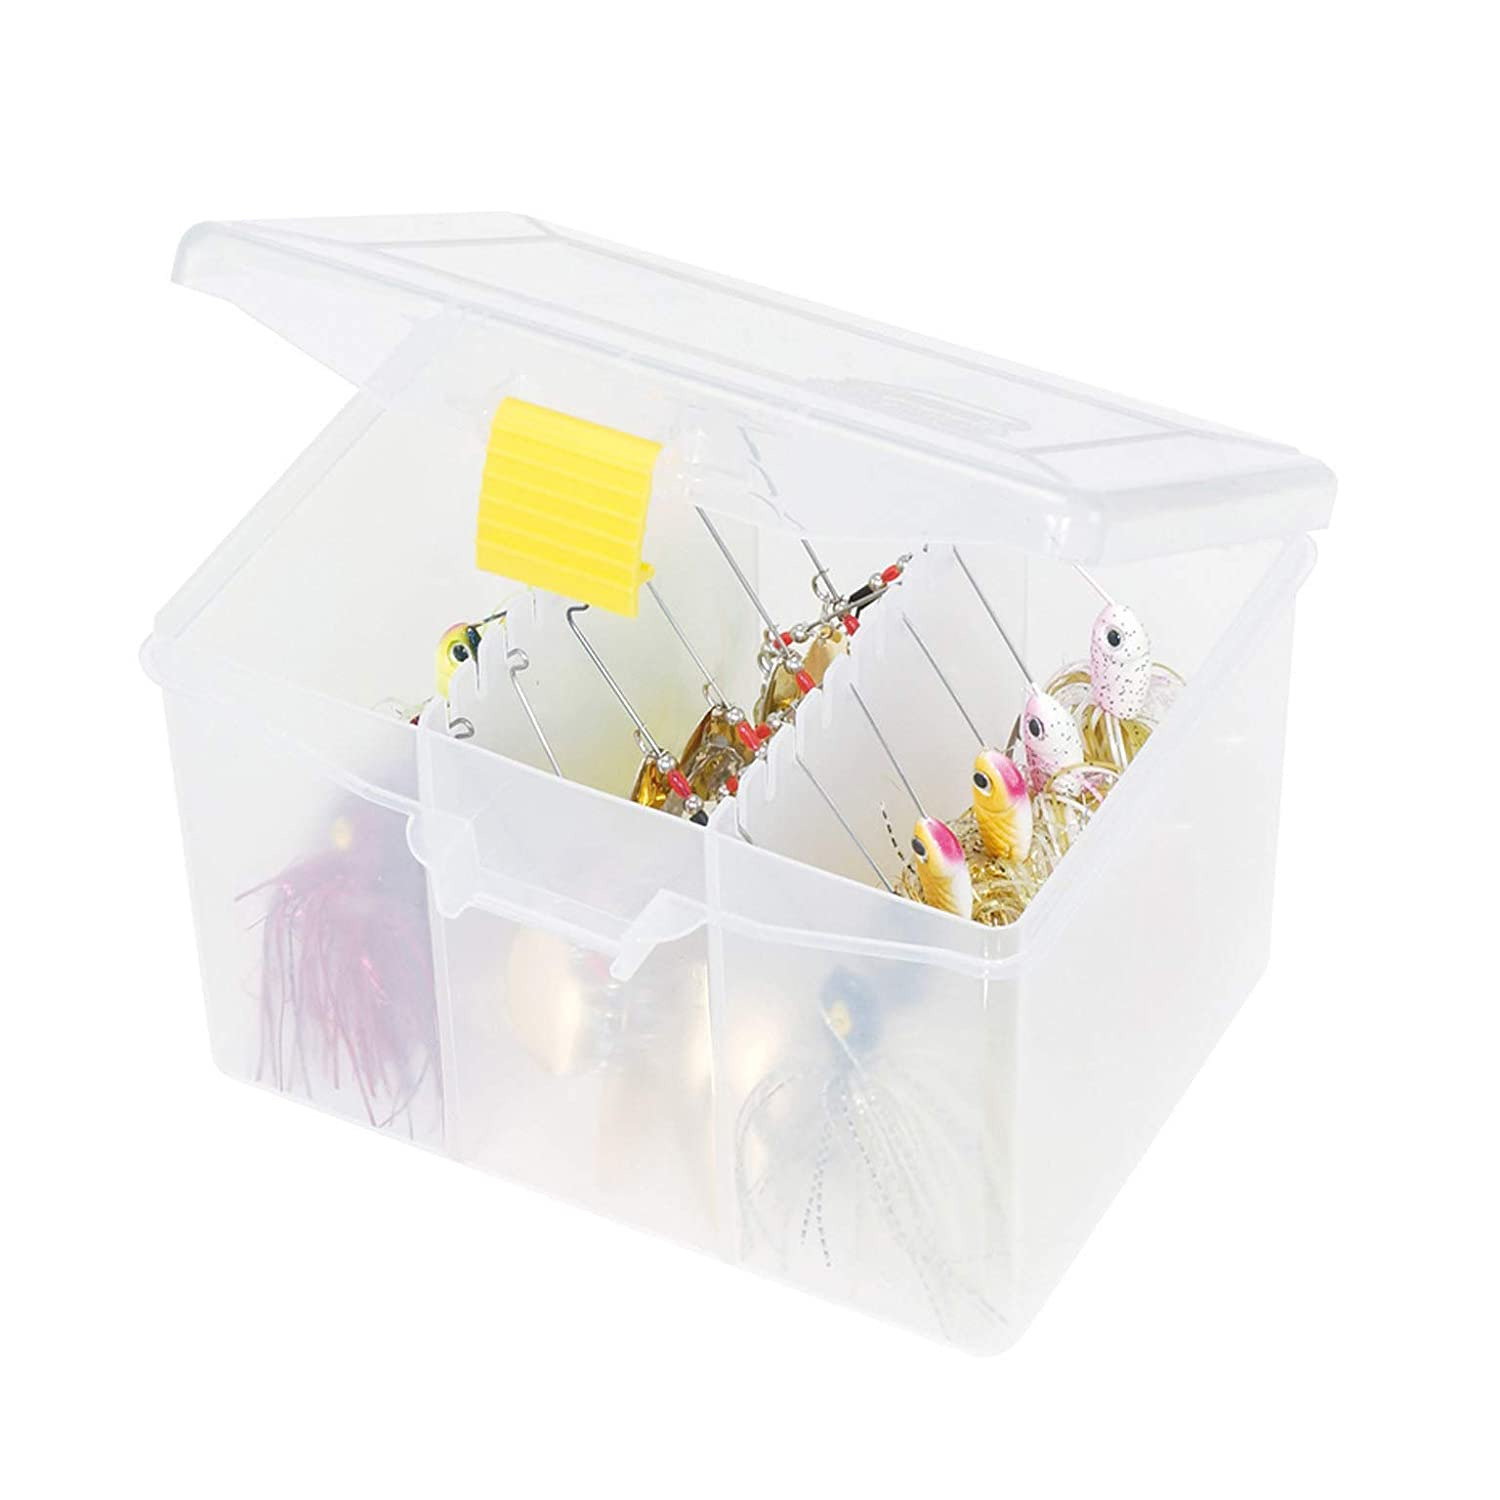 Amazon.com : Plano 3503 StowAway Spinner Bait Box : Fishing Bait Storage : Sports & Outdoors